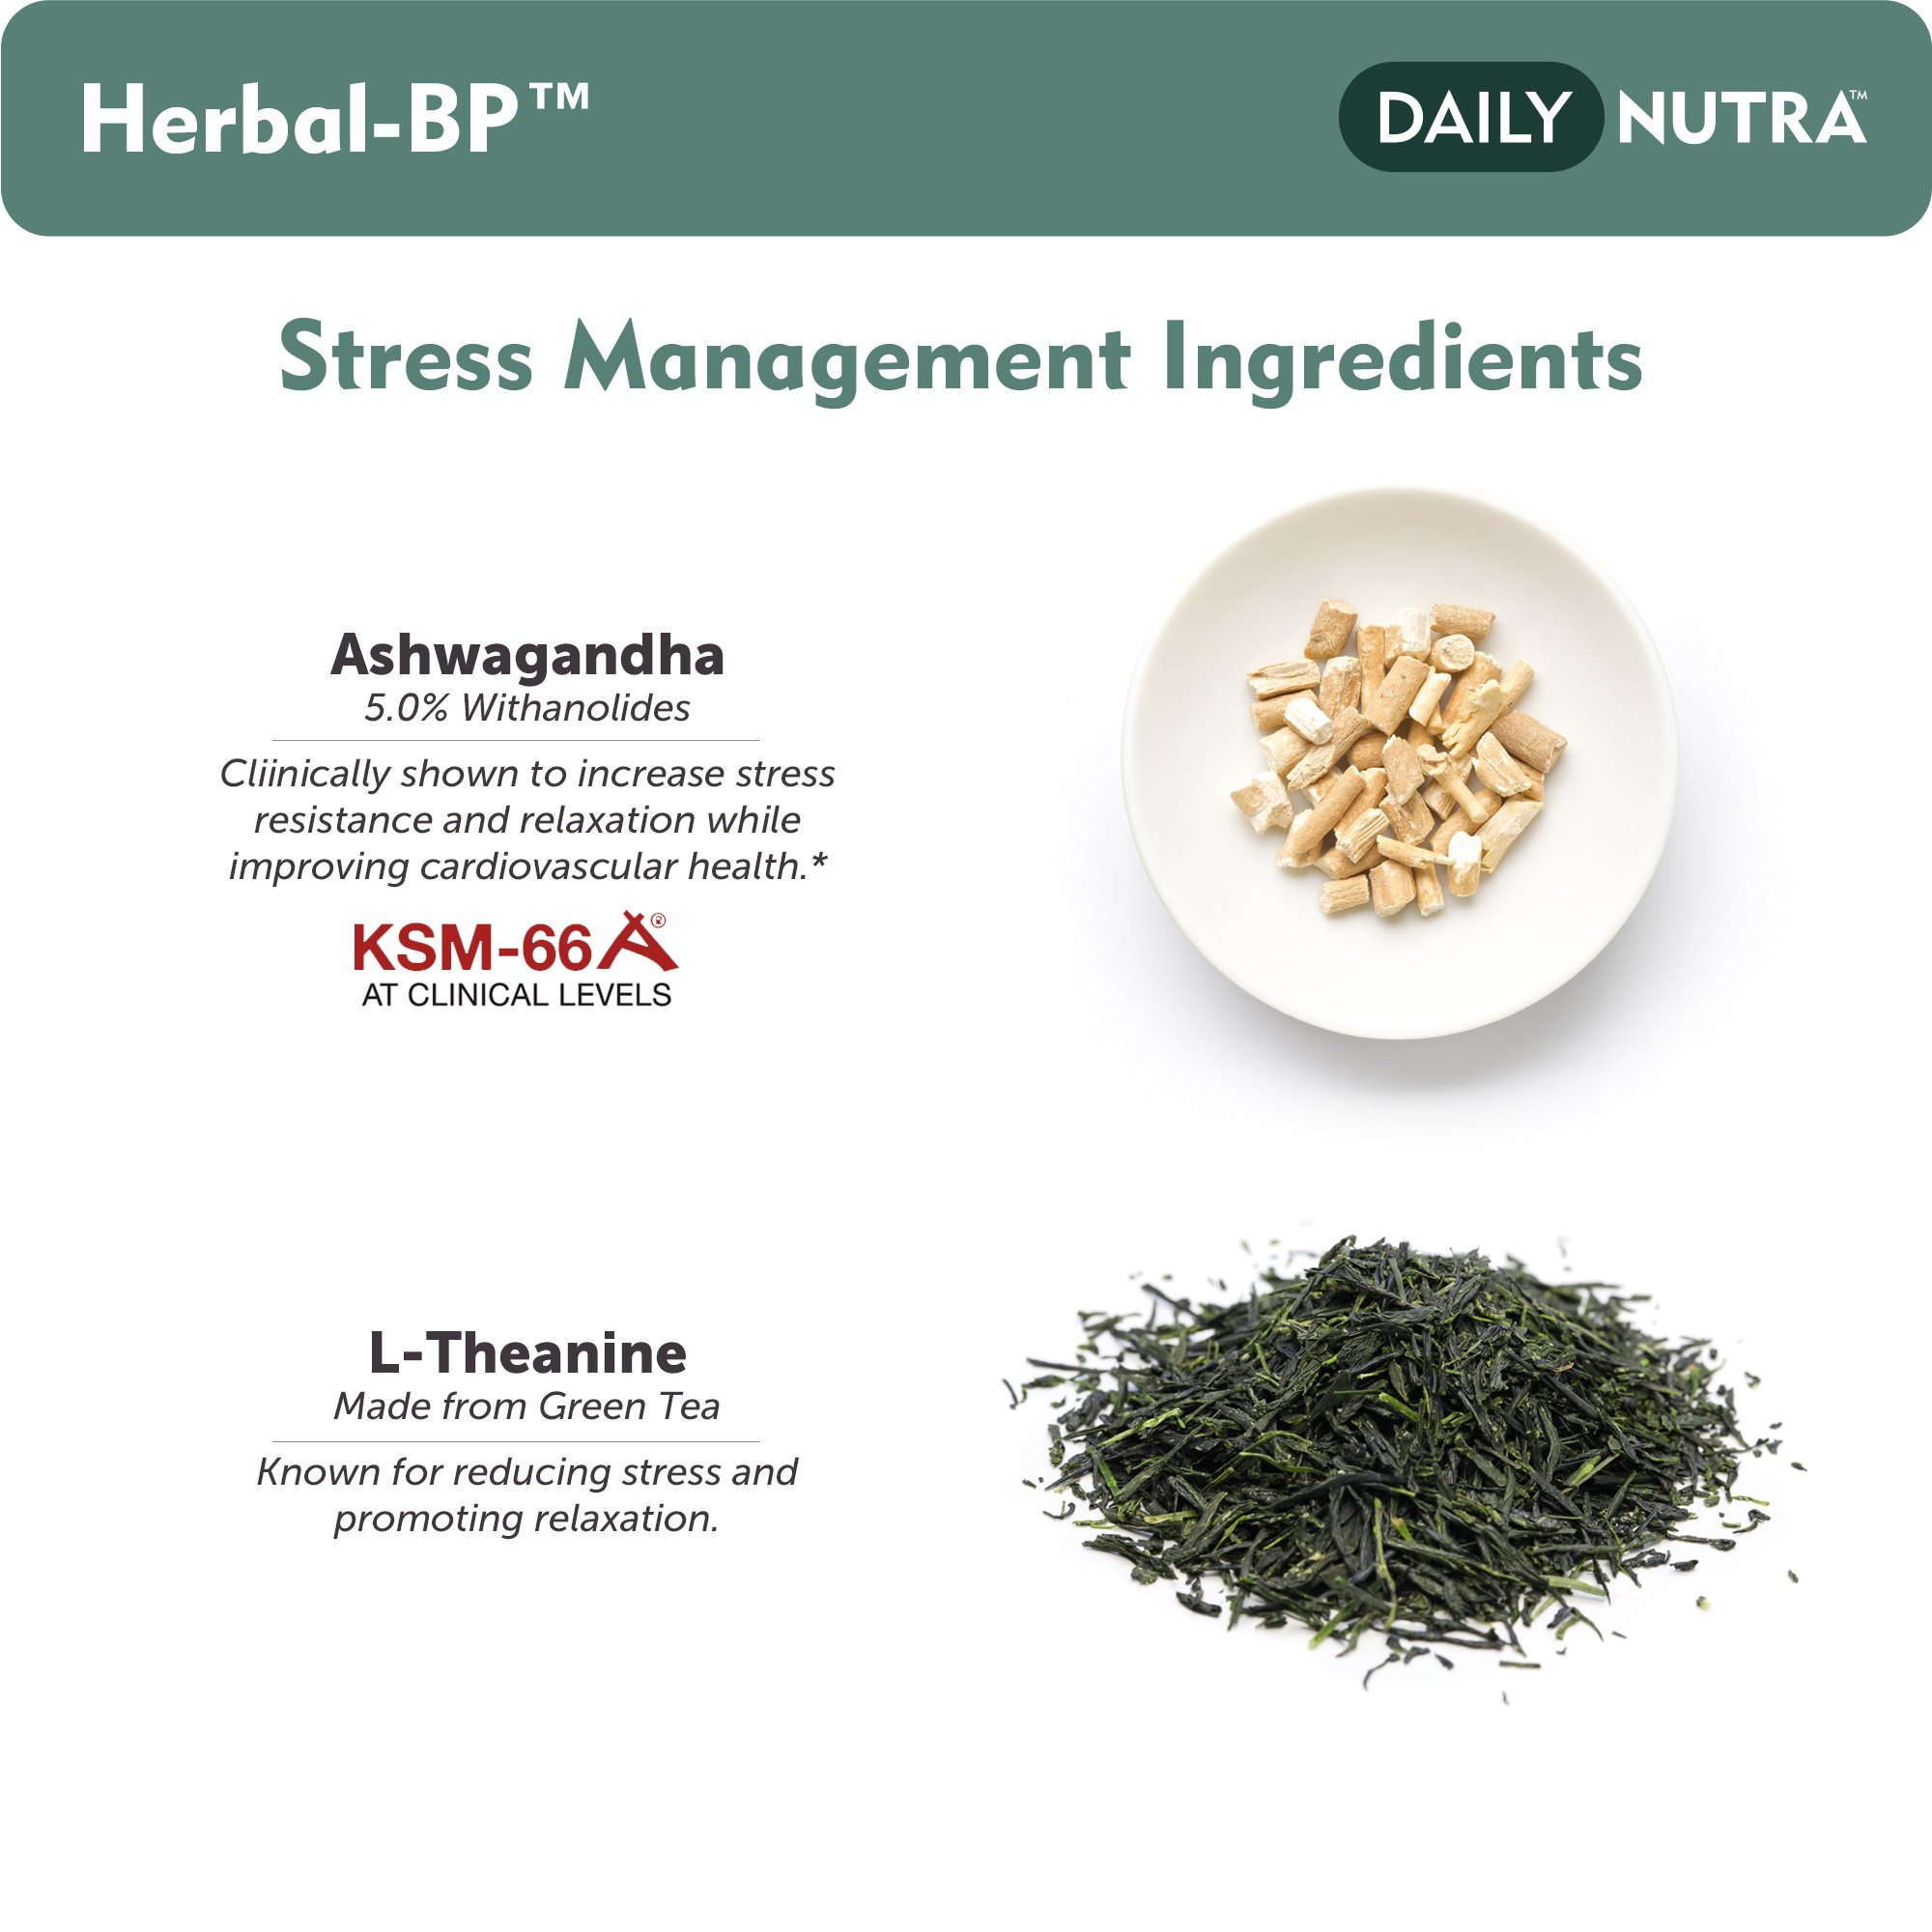 Herbal-BP Natural Blood Pressure Support with Stress Management - Medical Grade Botanical Extracts - Safe, Long-Term Support (3-Pack) by DailyNutra (Image #4)